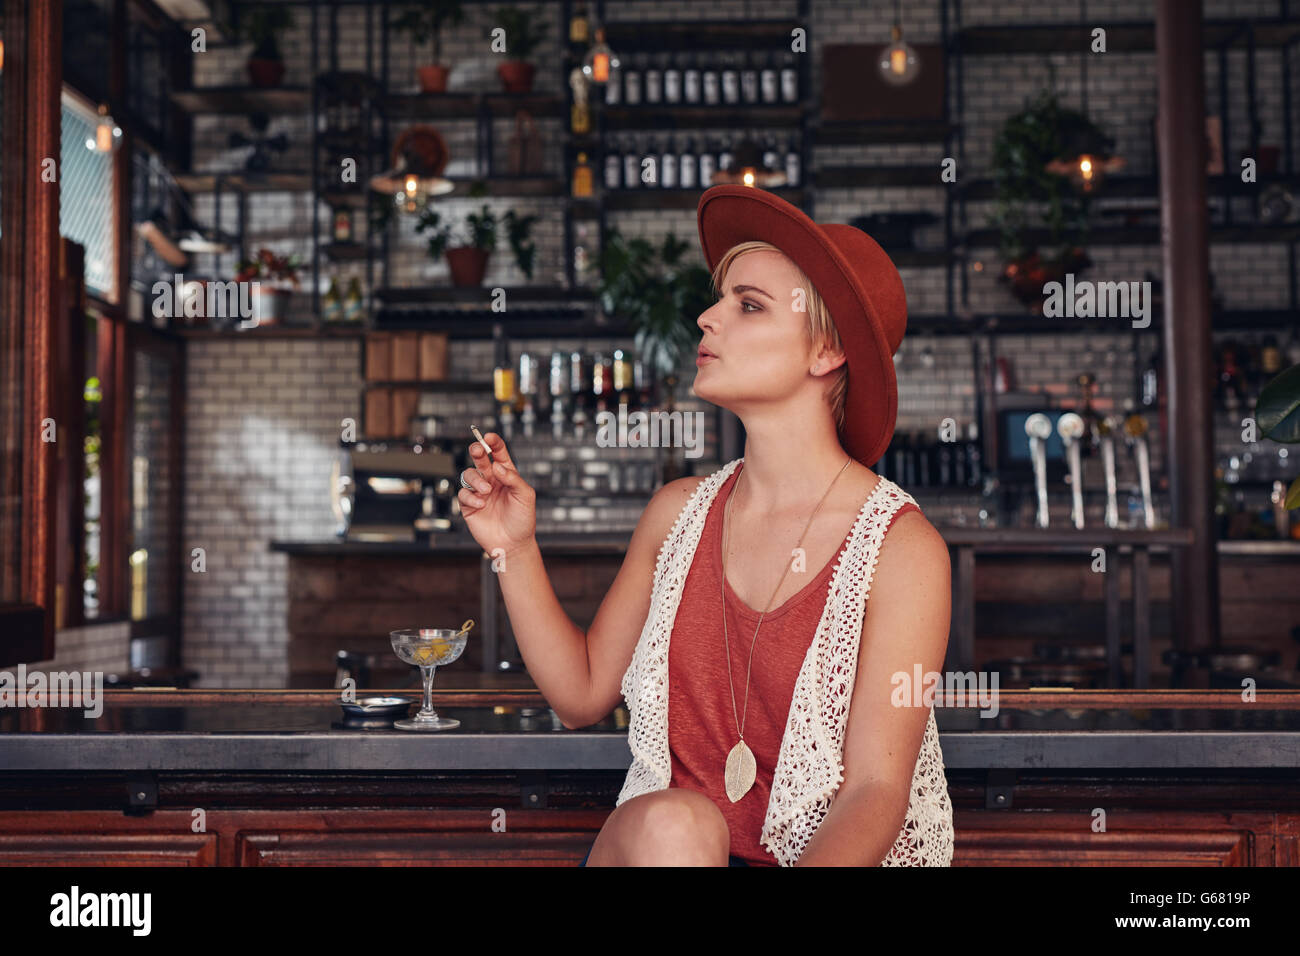 Portrait of attractive young woman smoking in a bar. Holding cigarette and looking away. - Stock Image